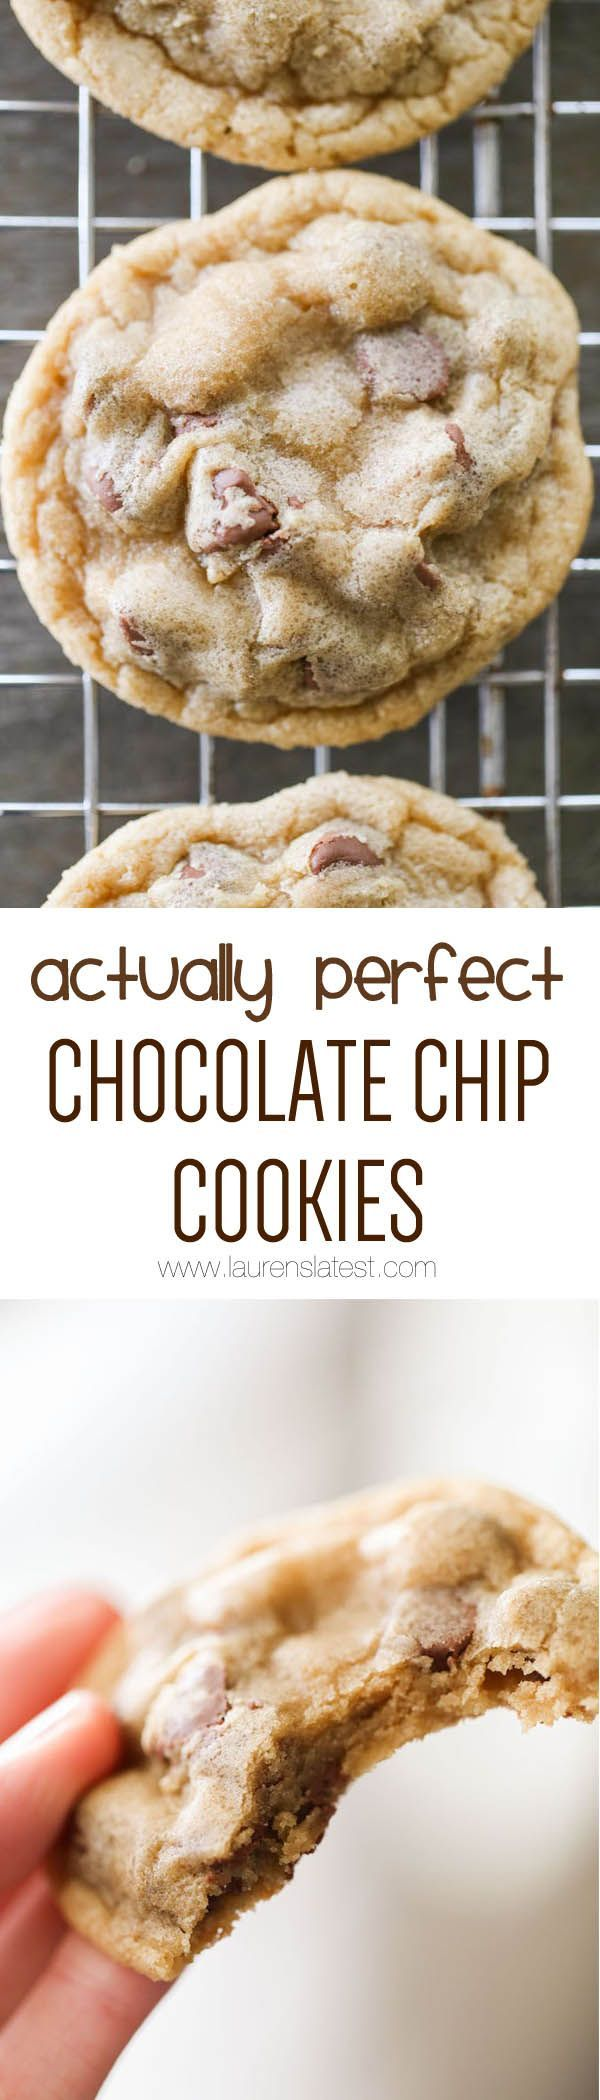 3099 best Cookies images on Pinterest   Cookies, Wafer cookies and ...